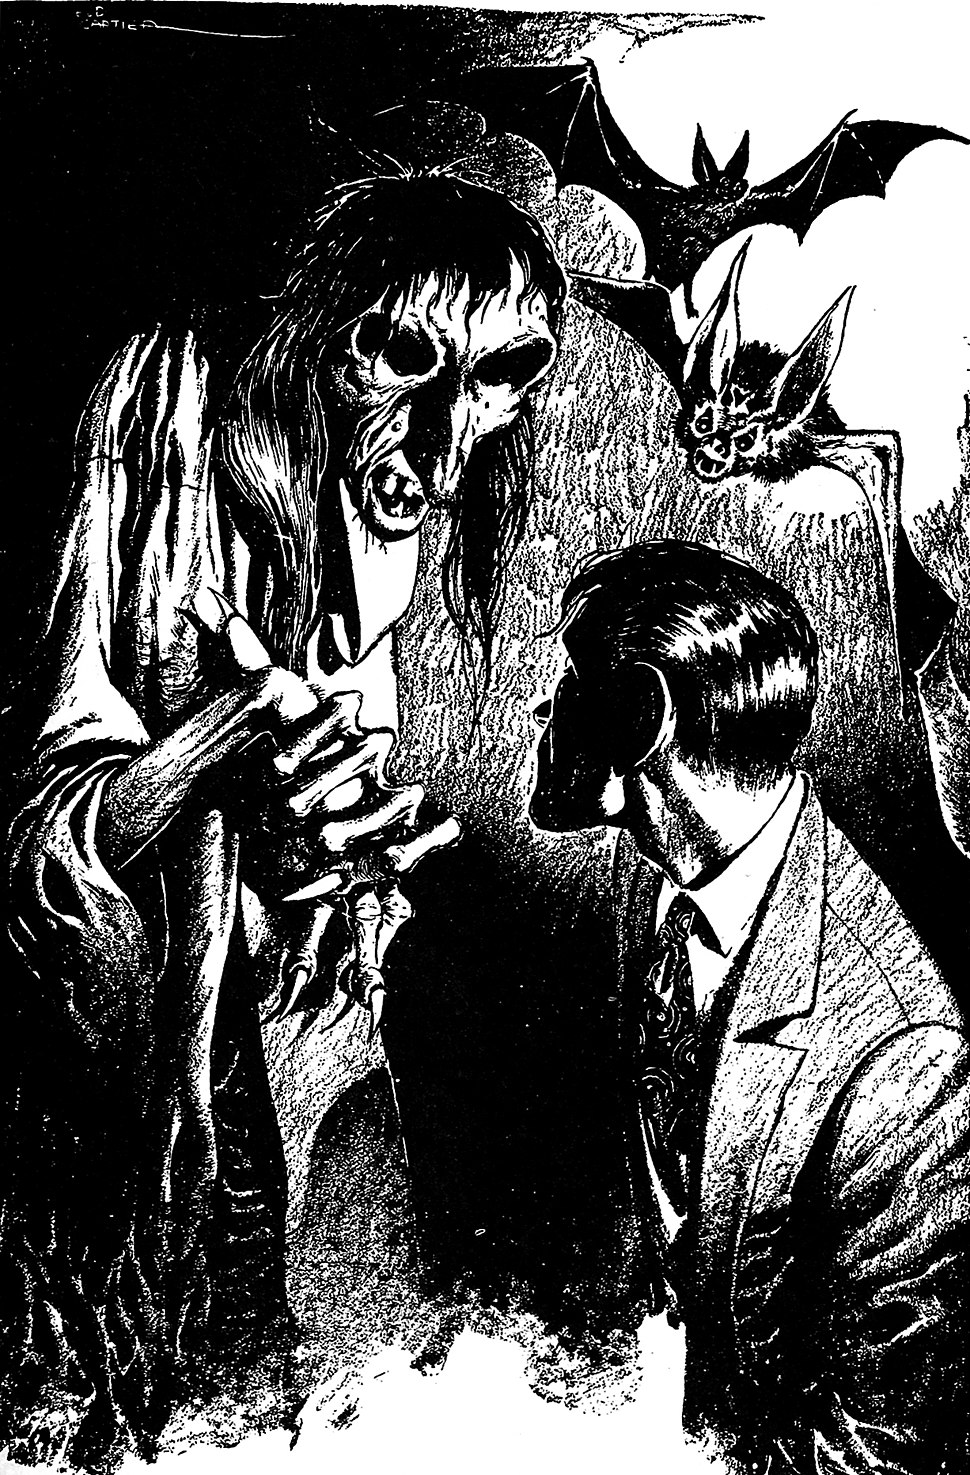 Monochrome drawing: a suited man confronts a skeletal supernatural creature, over whose shoulder two giant bats are visible